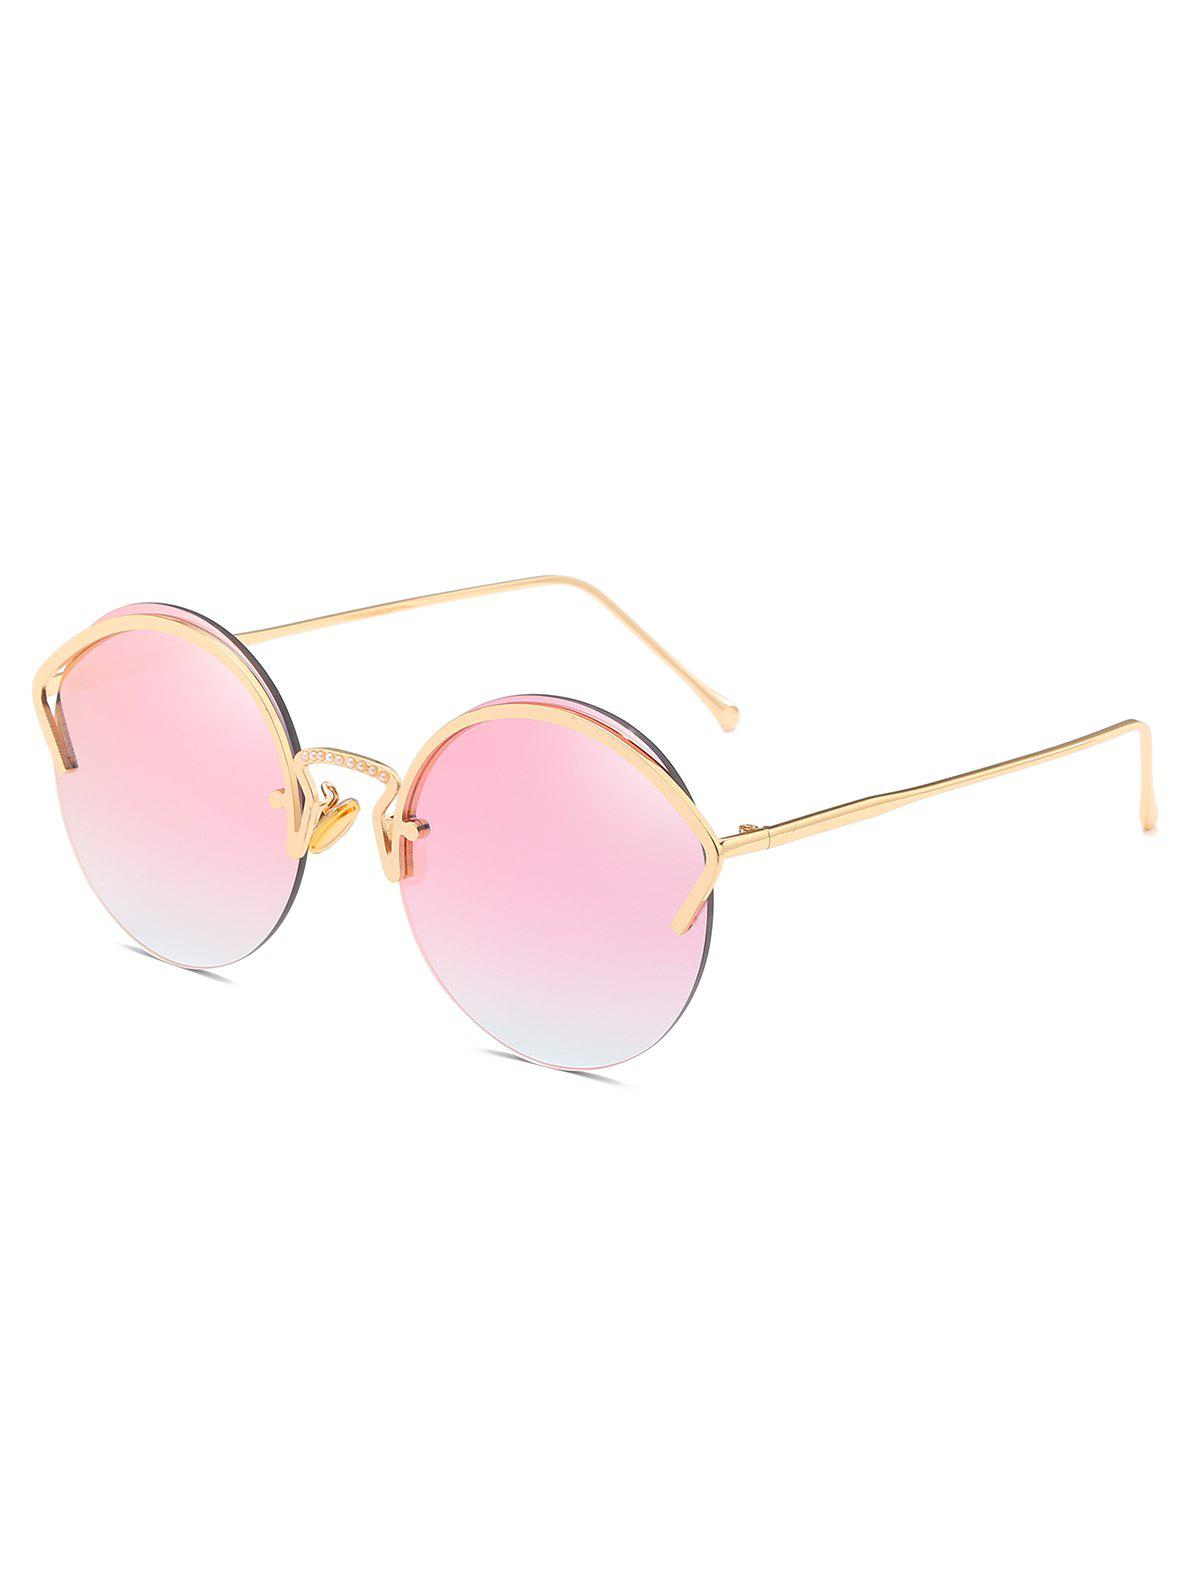 Trendy Novelty Alloy Frame Semi Rimless Sunglasses